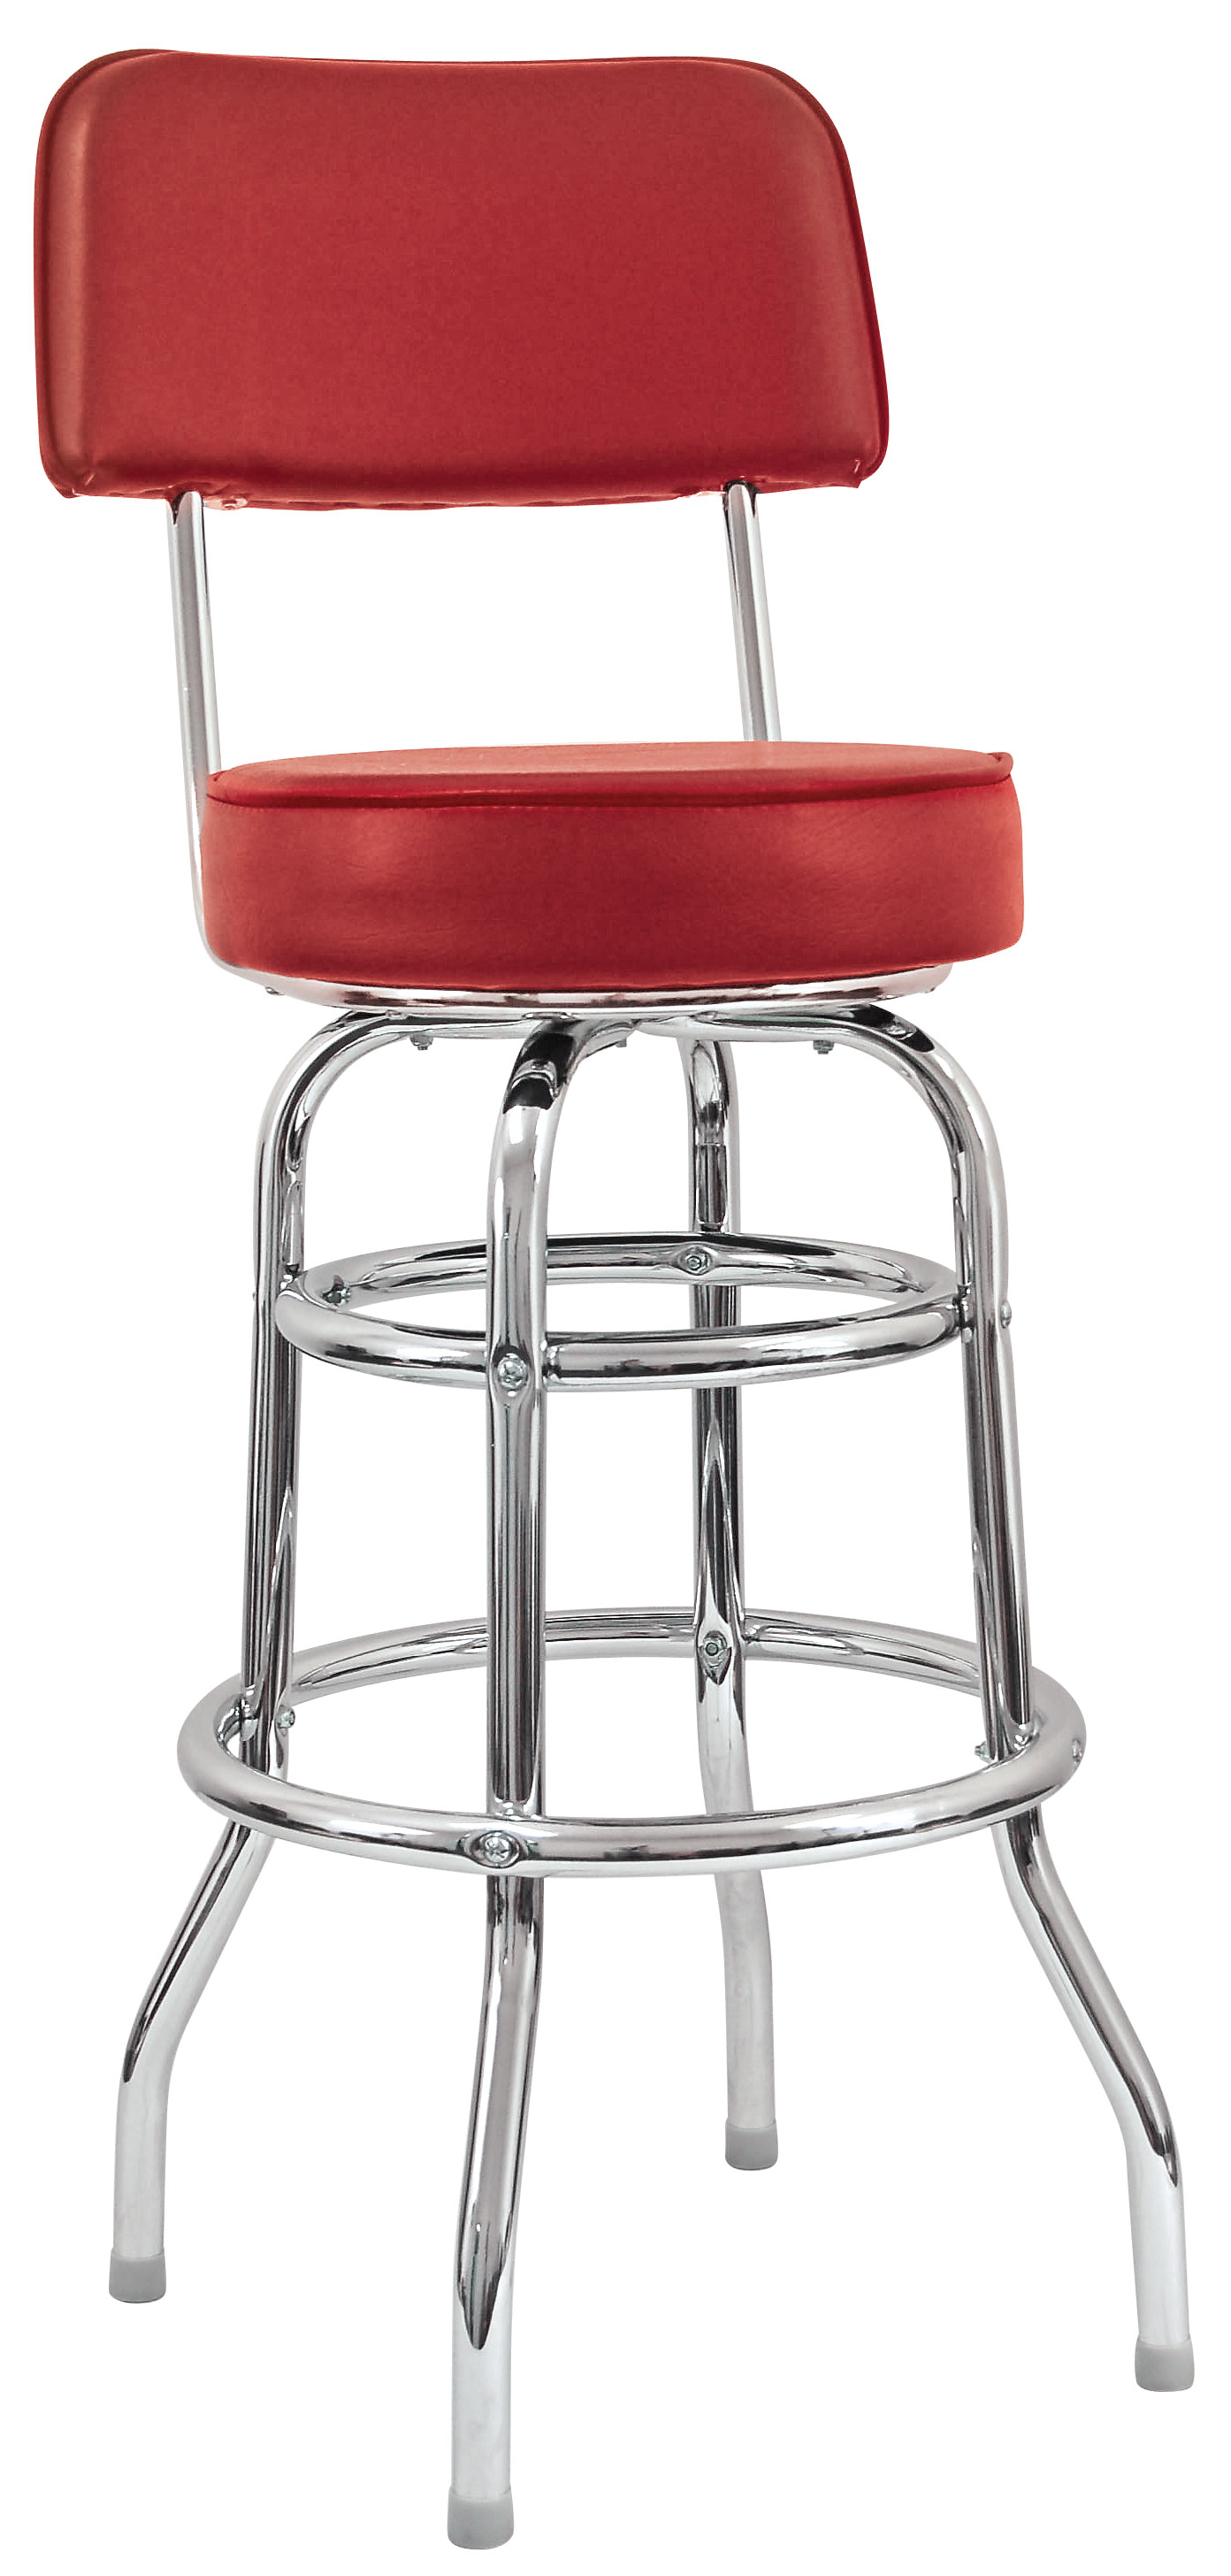 com of seat brush antique red top stools stackable inch walmart metal stool distressed two set wood bar vintage clear industrial ip btexpert